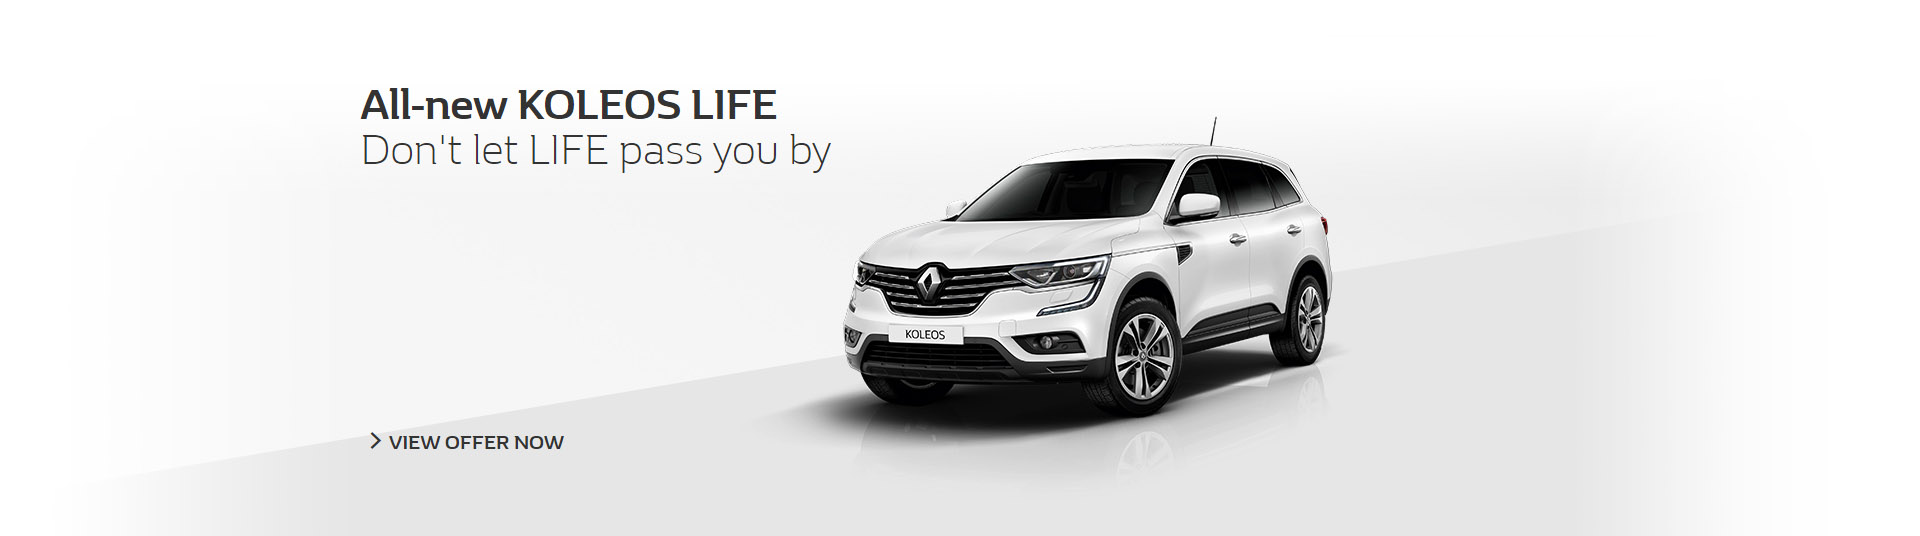 All new Koleos Life, don't let LIFE pass you by, available at Metro Renault Brisbane.